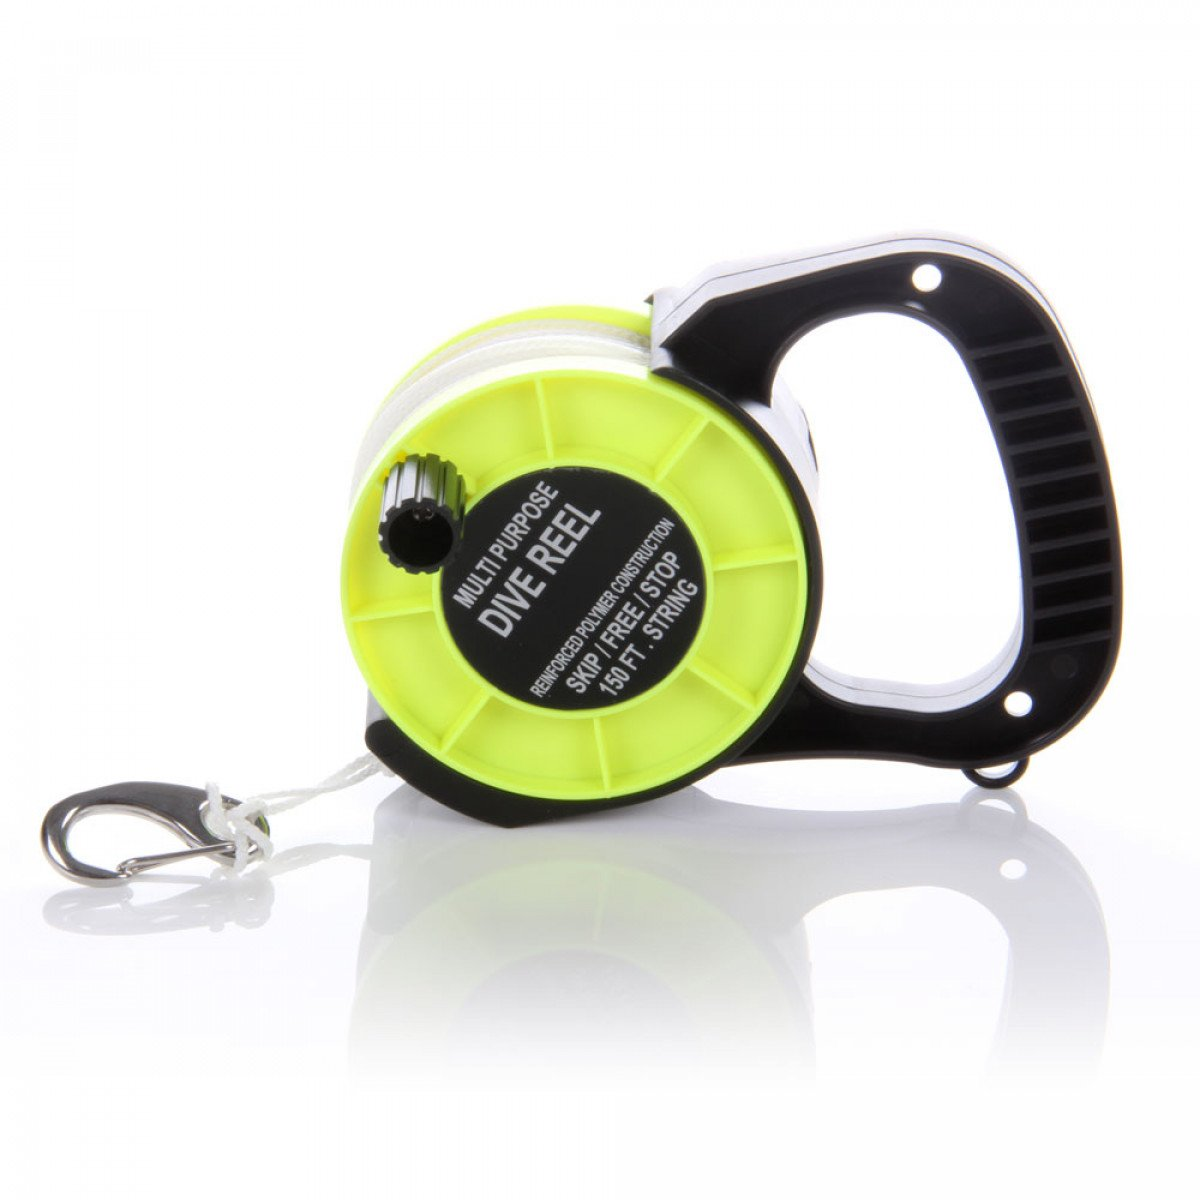 Northern Diver Multi-Purpose 45m Reel